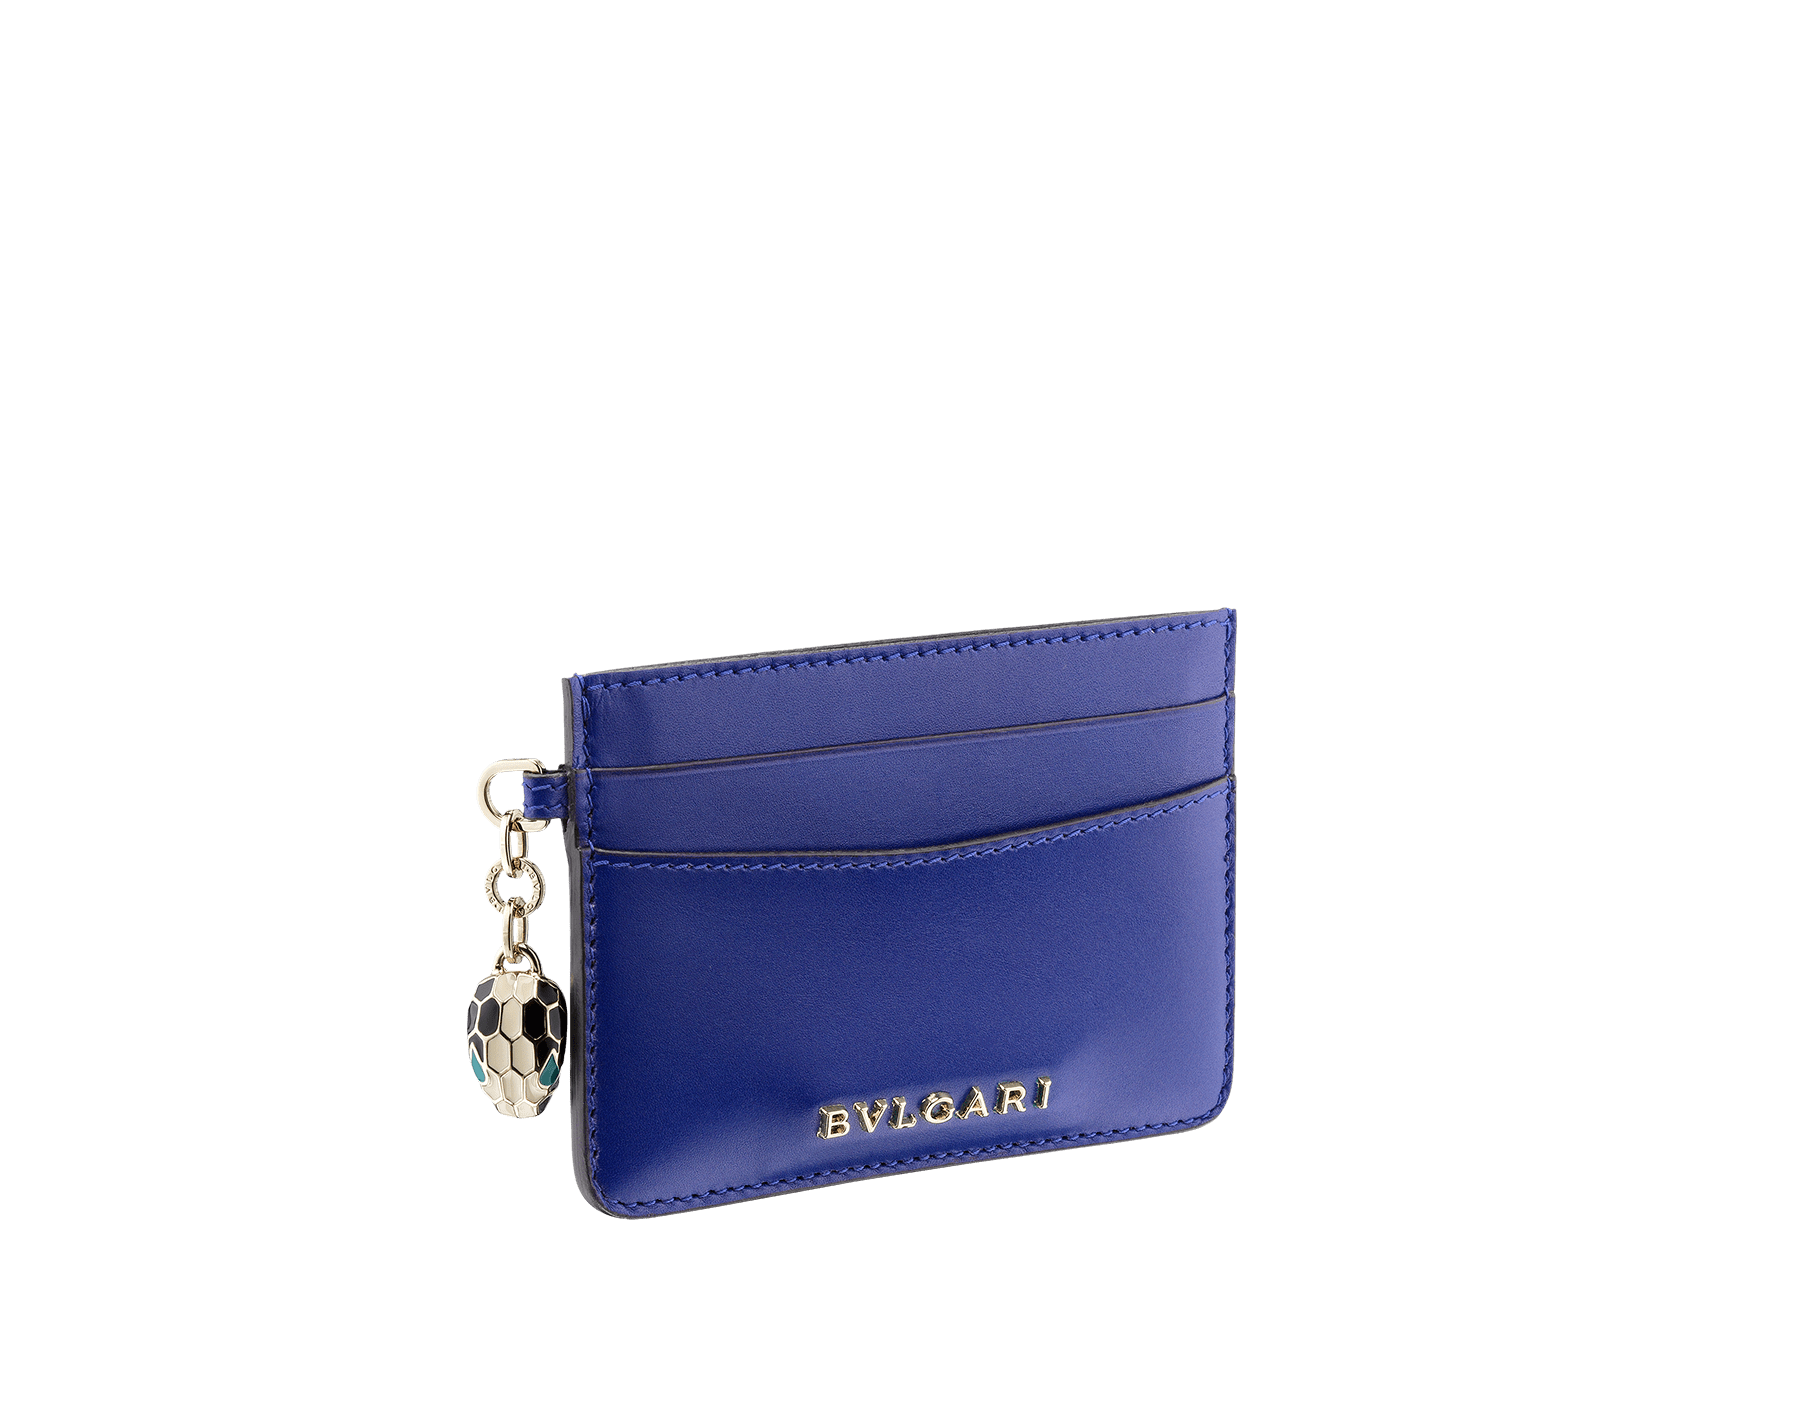 Credit card holder in royal sapphire and teal topaz calf leather. Serpenti charm in black and white enamel with green malachite enamel eyes and Bulgari logo in metal characters. Four credit card slots and one compartment. Also available in other colours. 10,5 x 7,5 cm. - 4.1. x 3.0'' 282021 image 2